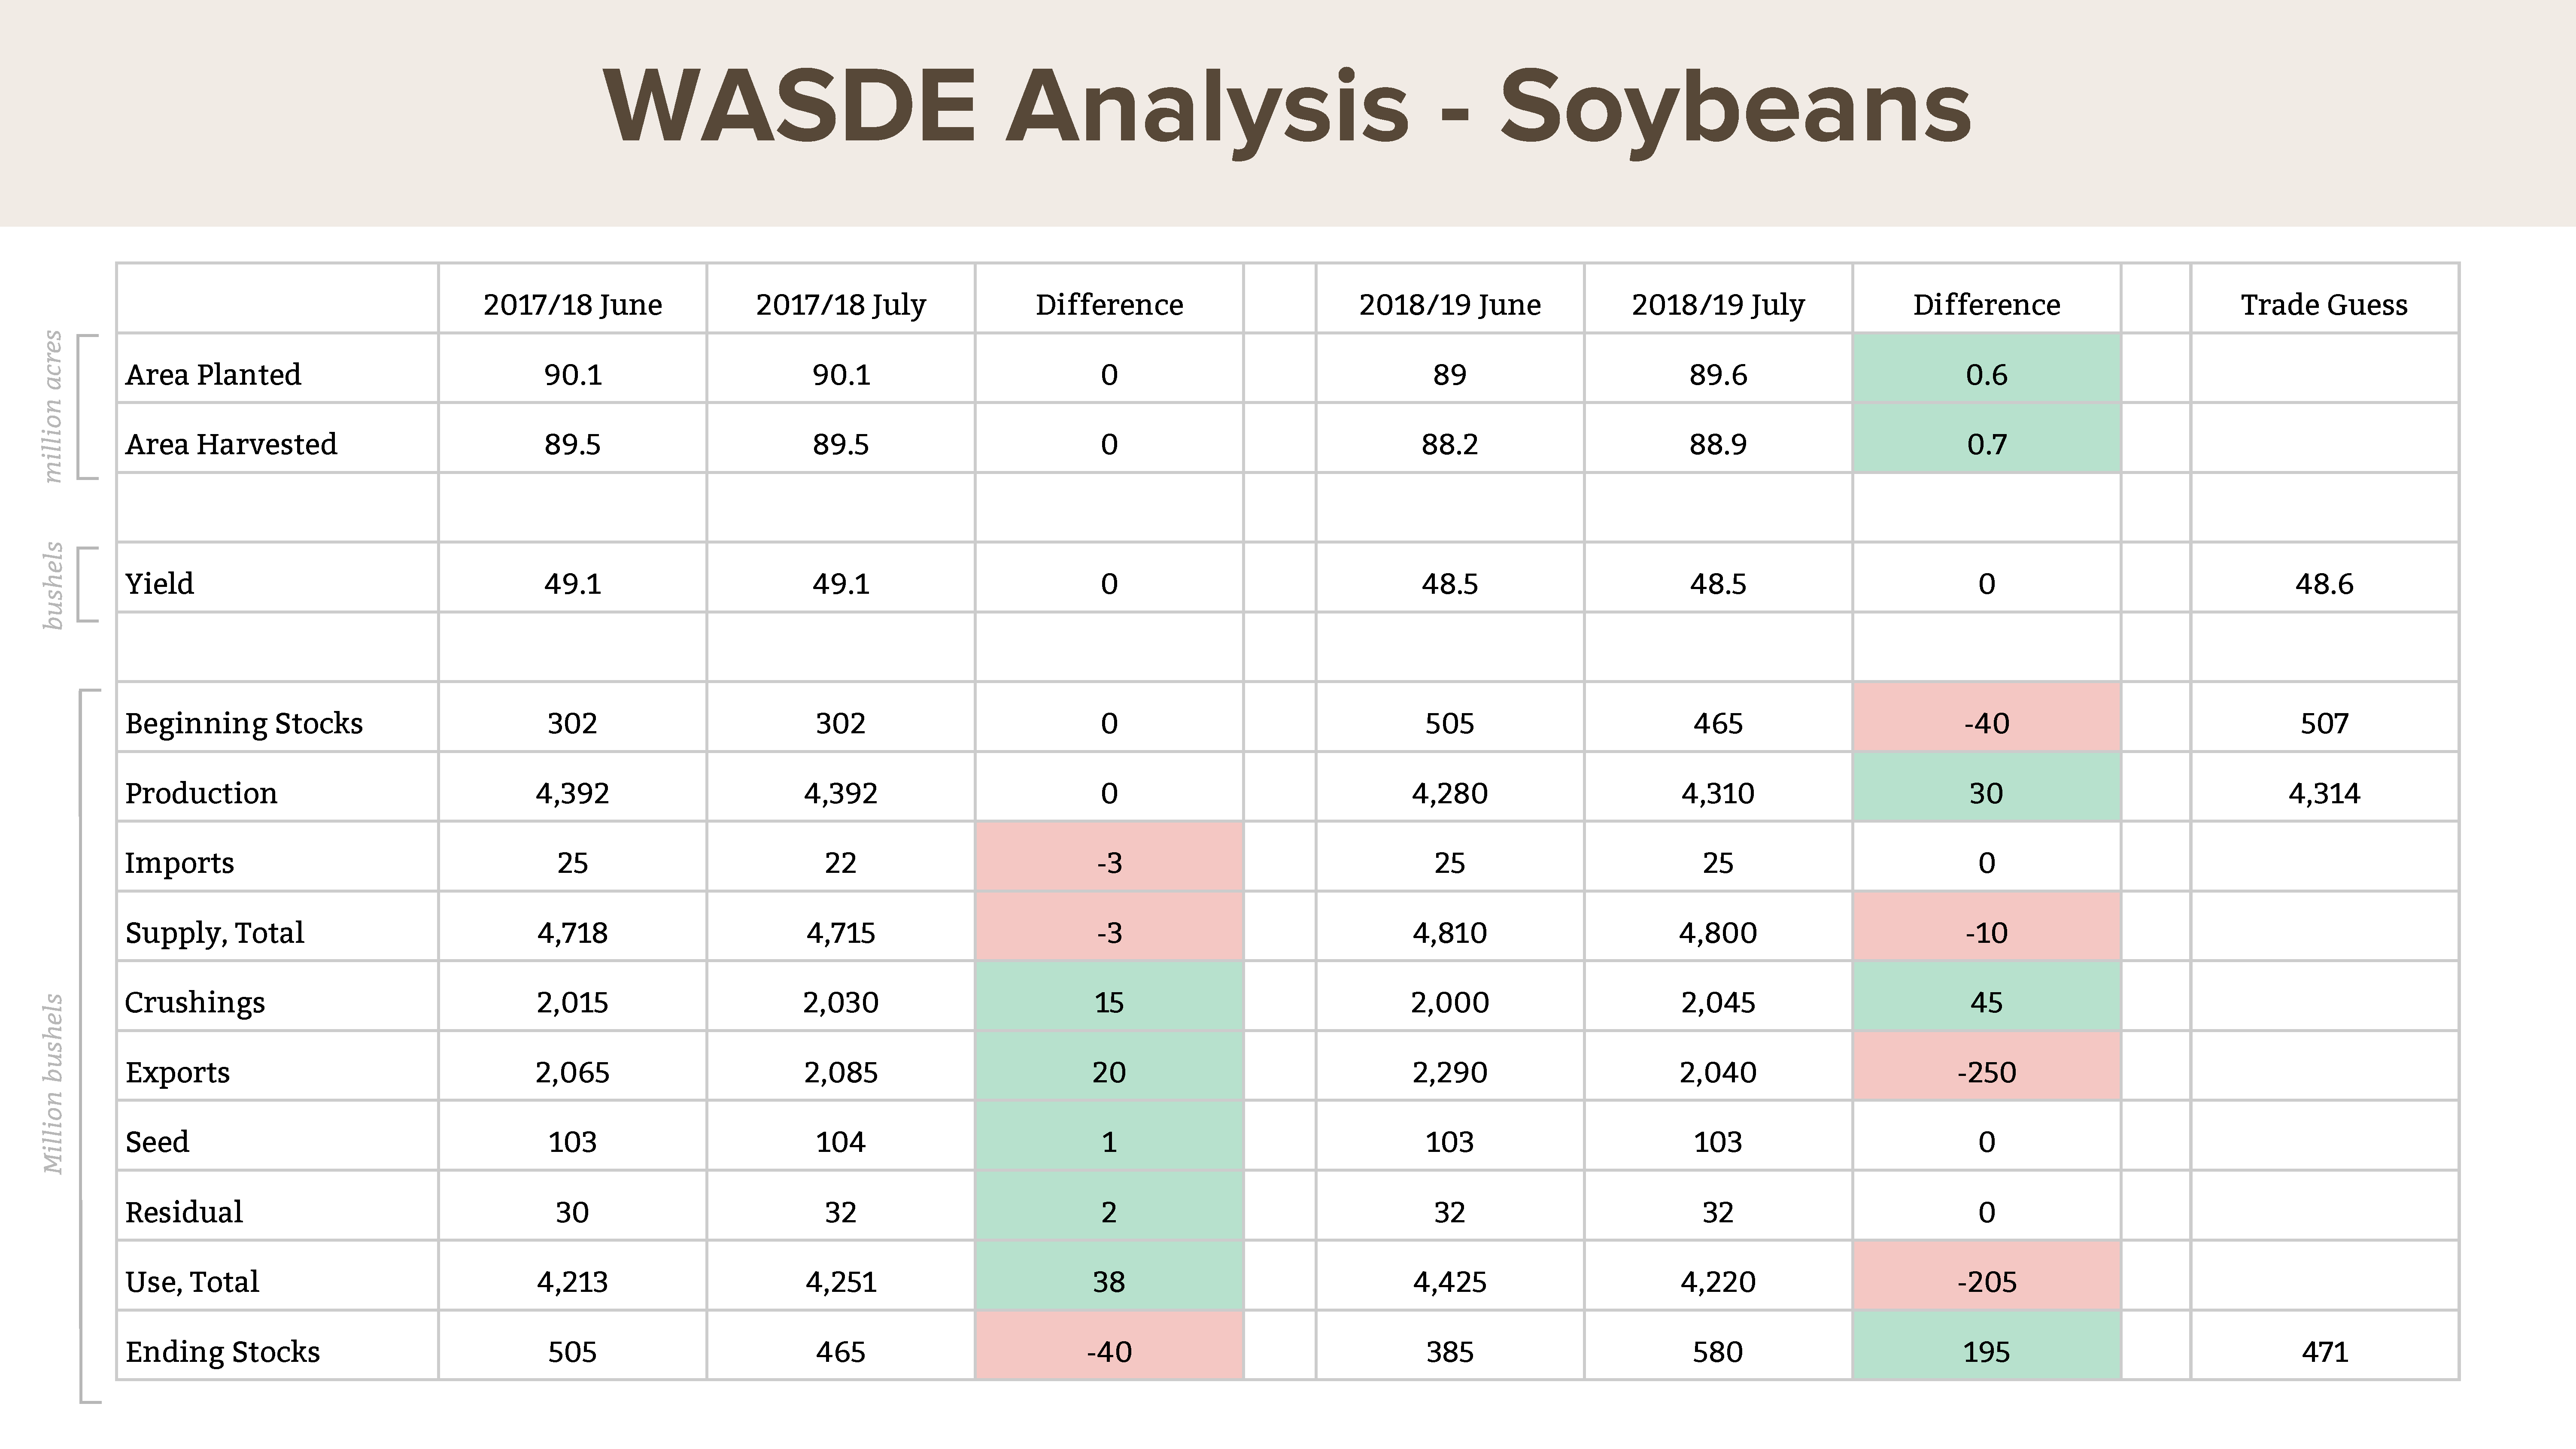 July WASDE: estimated U.S. soybean acres planted, harvested, and yield